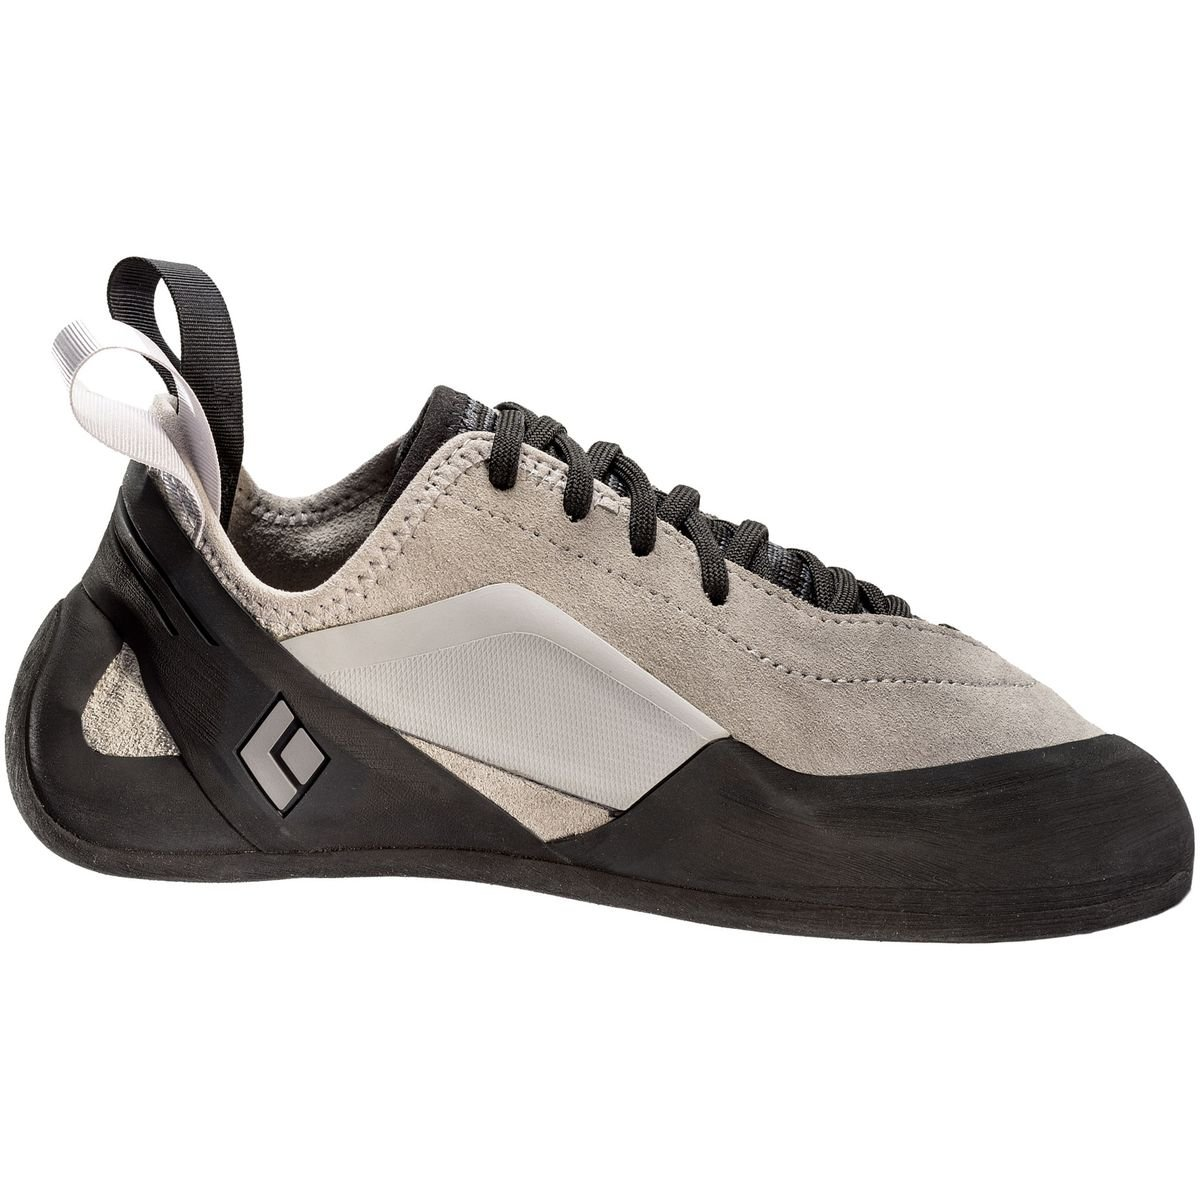 Black Diamond Men's Aspect Climbing Shoes BD570111ALUM1151